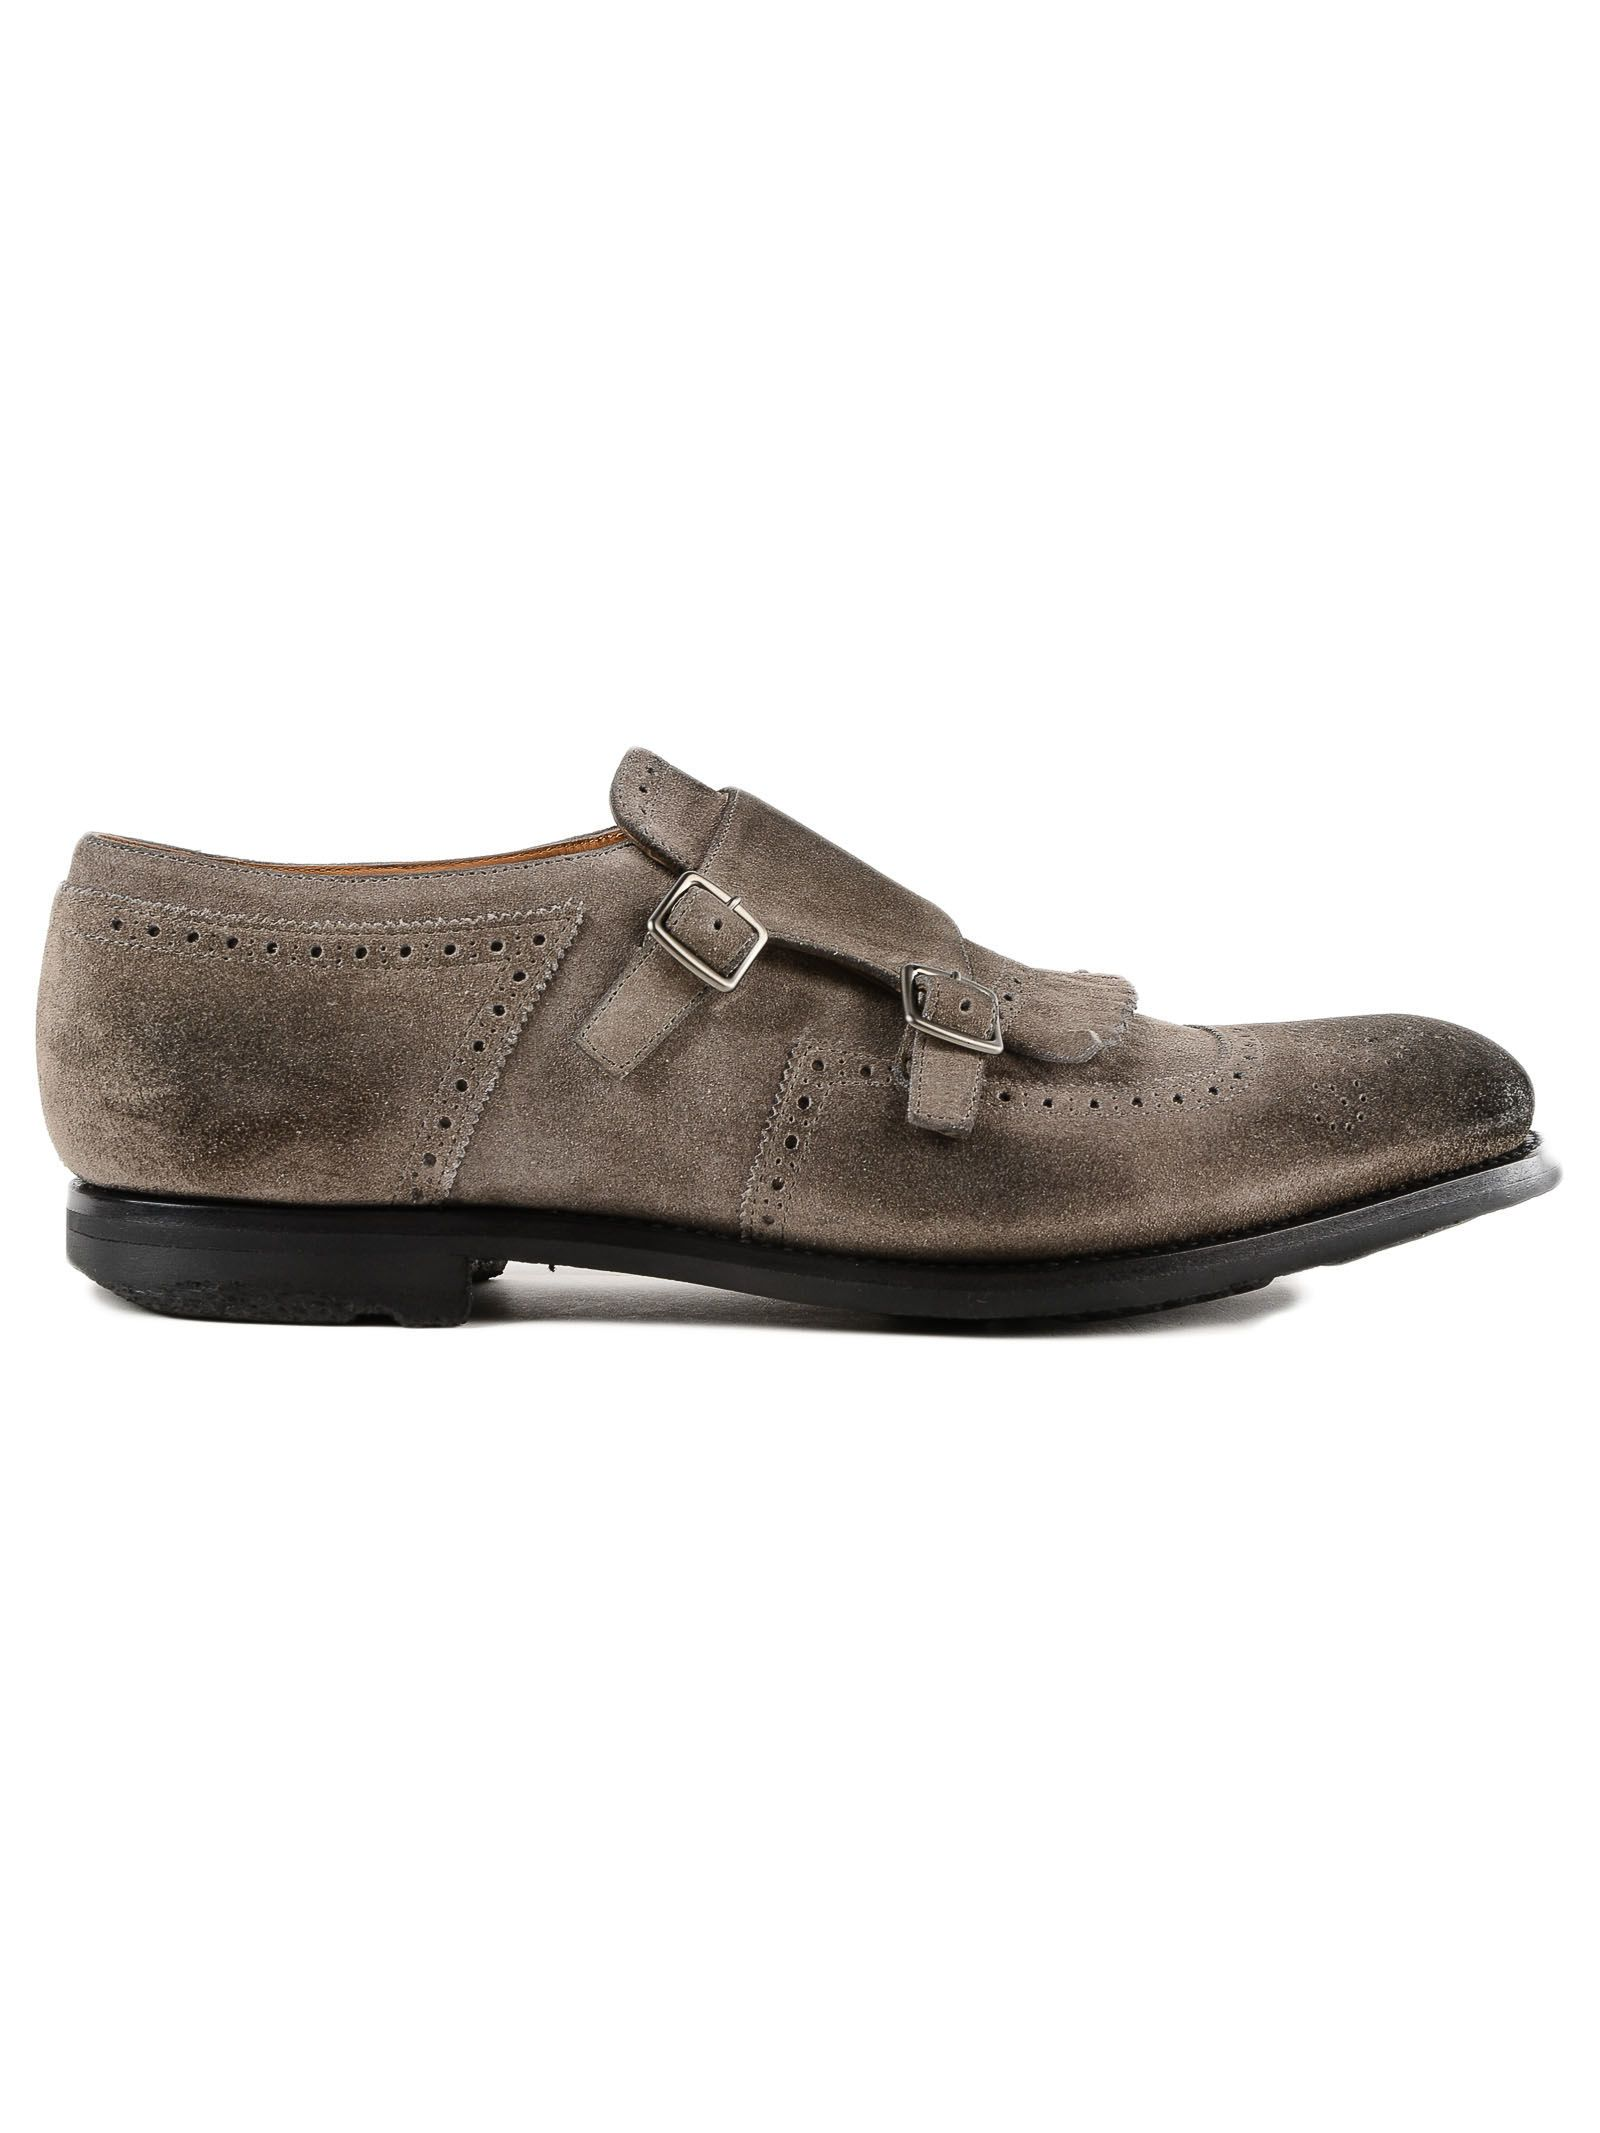 Church's Perforated Monk Shoes